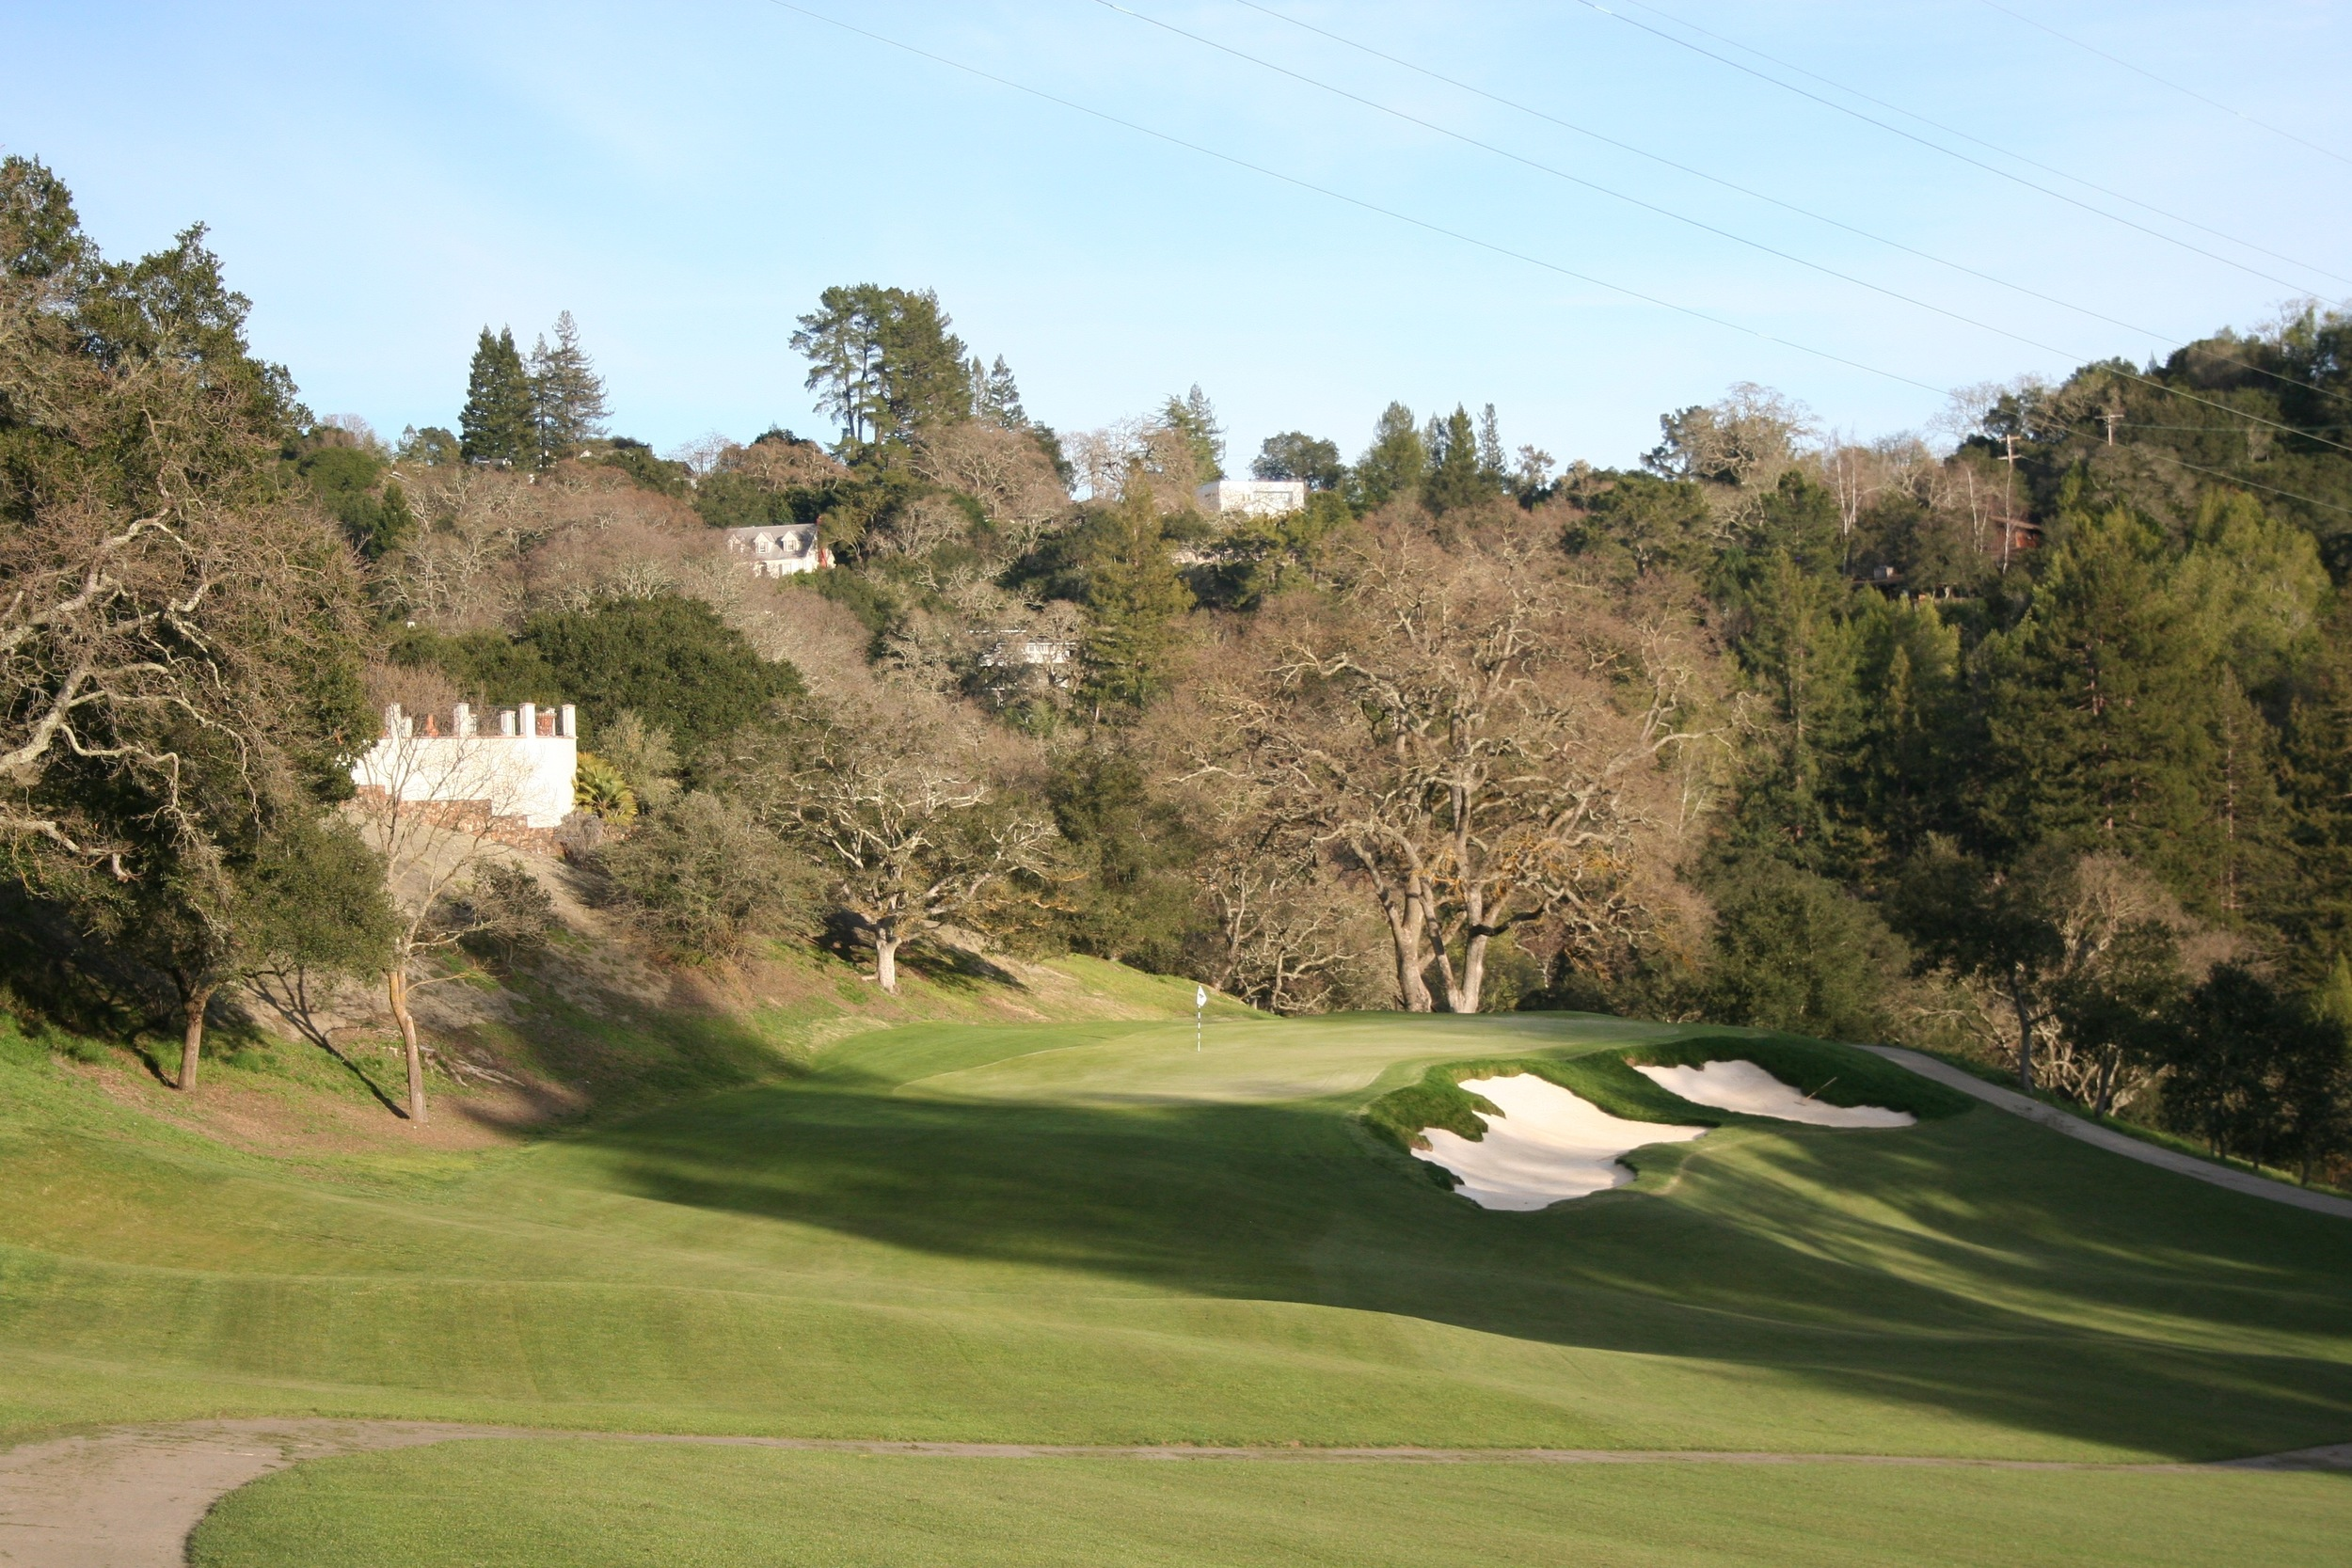 hochstein-design-orinda-cc-beforeafter-hole-4-4.jpg